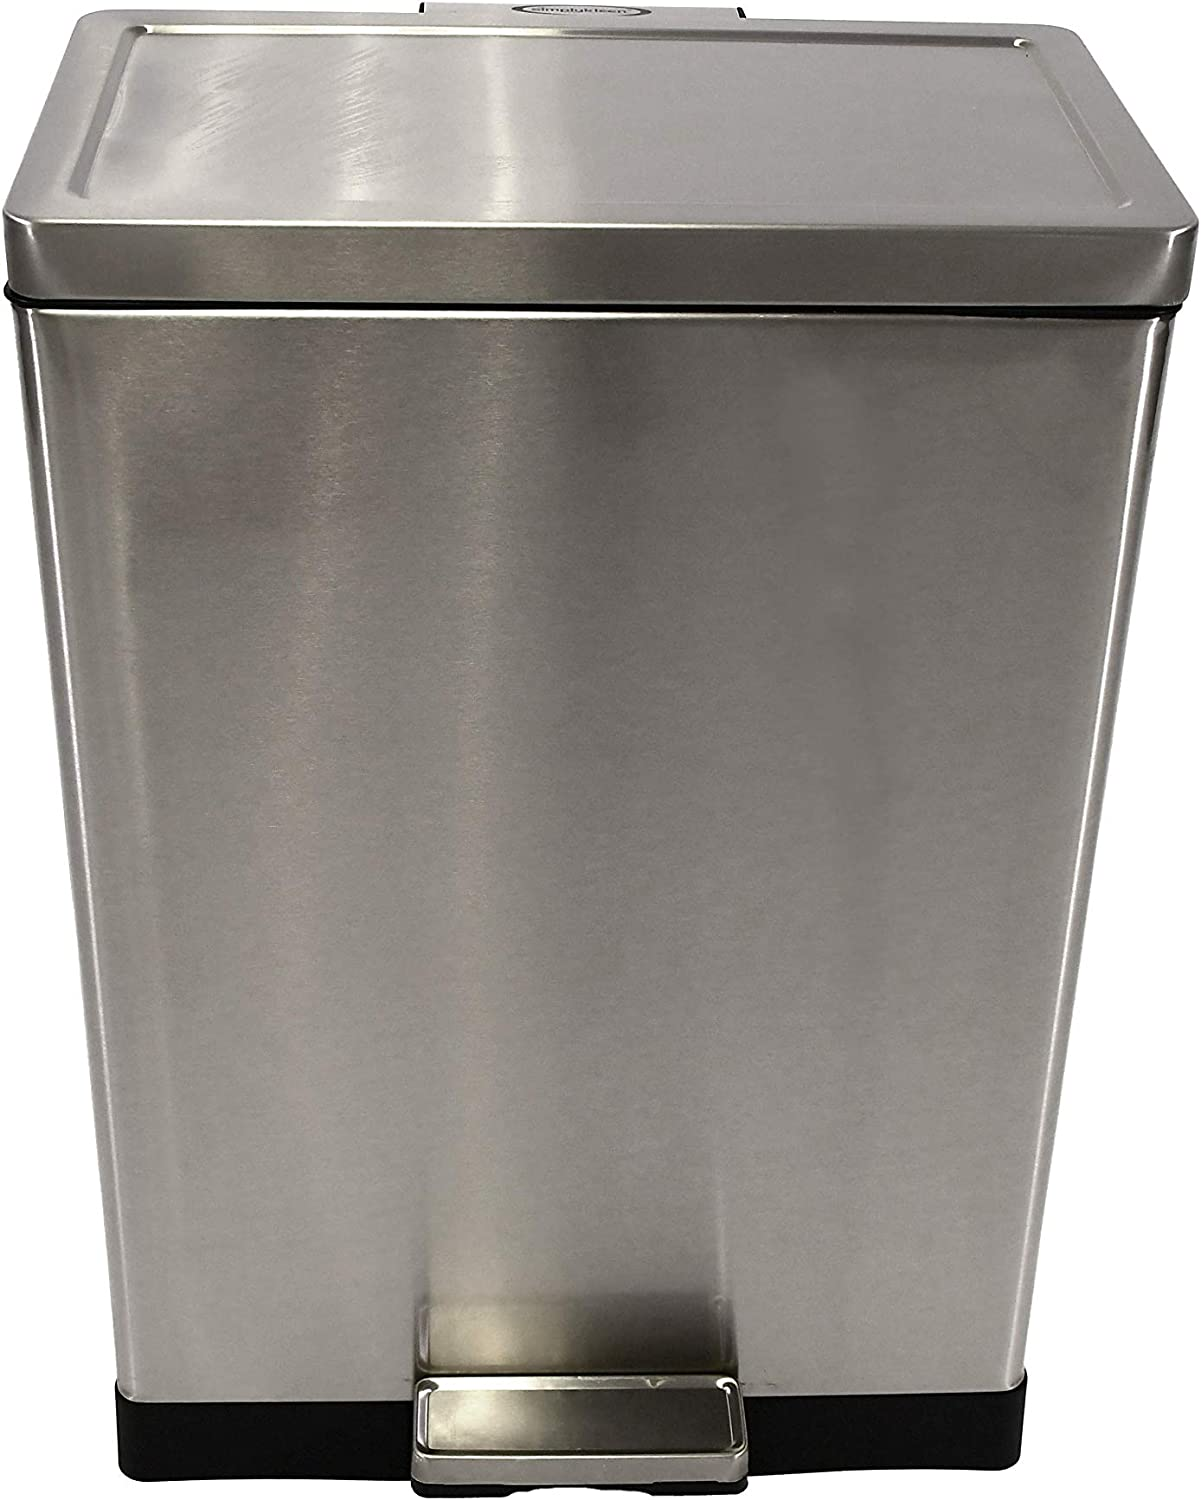 SIMPLYKLEEN Kleen-Fit 40 Liter Rectangle Stainless Steel Trash Can for Kitchen, Bathroom, OR Home - 10.5 Gallon Waste Bin - Fits 13 Gallon Garbage Bags